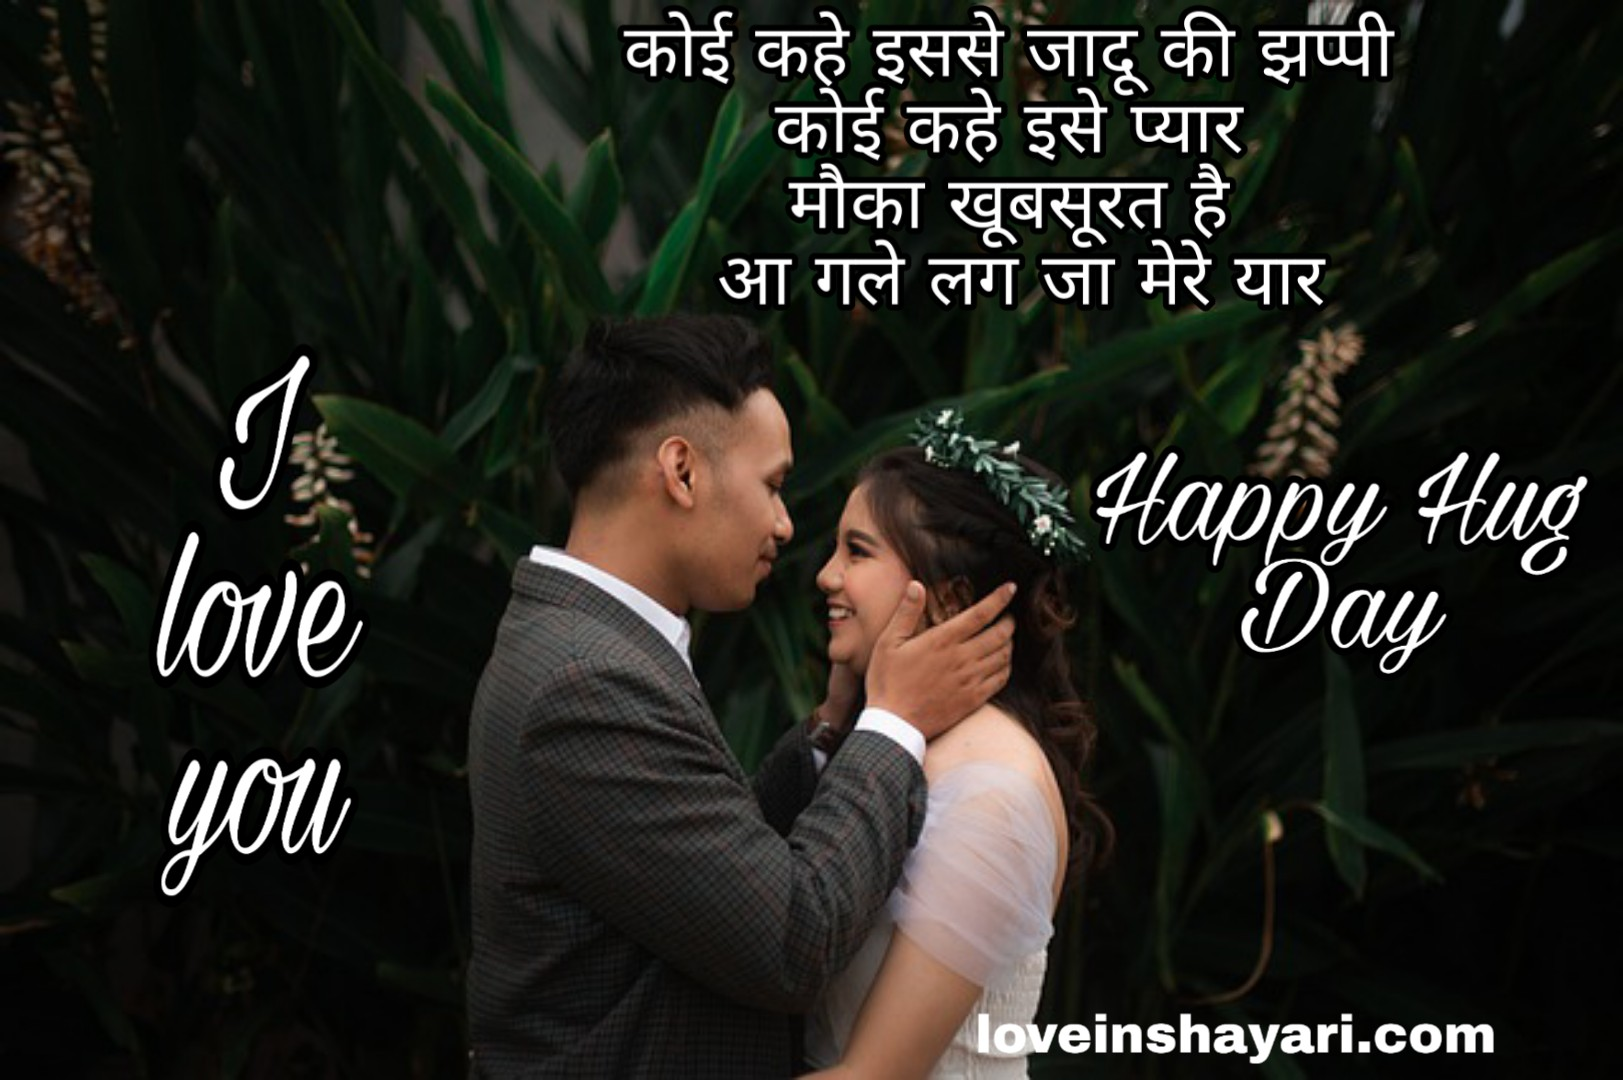 Happy Hug day 2020 shayari, images, message